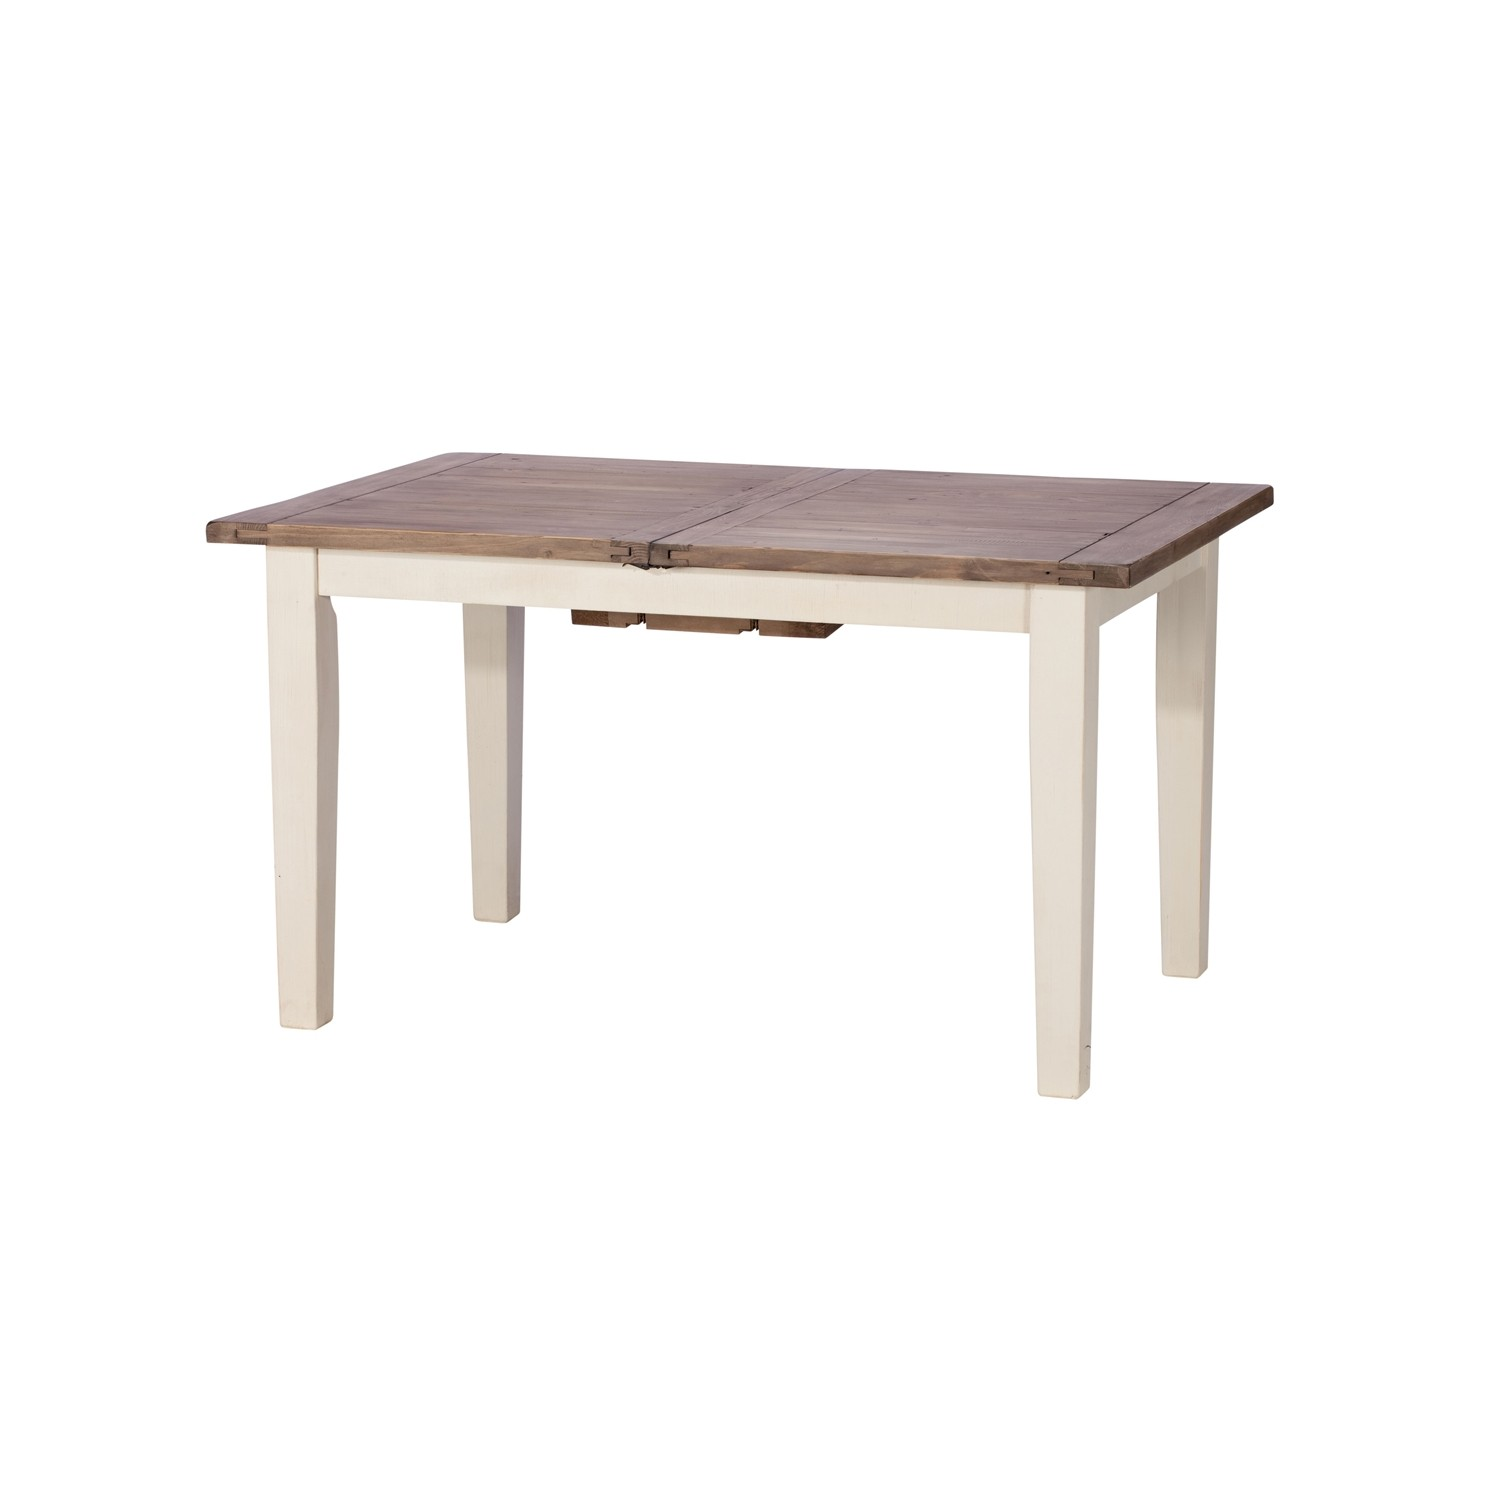 Casa cotswold extending dining table 120cm leekes for 120cm extending dining table